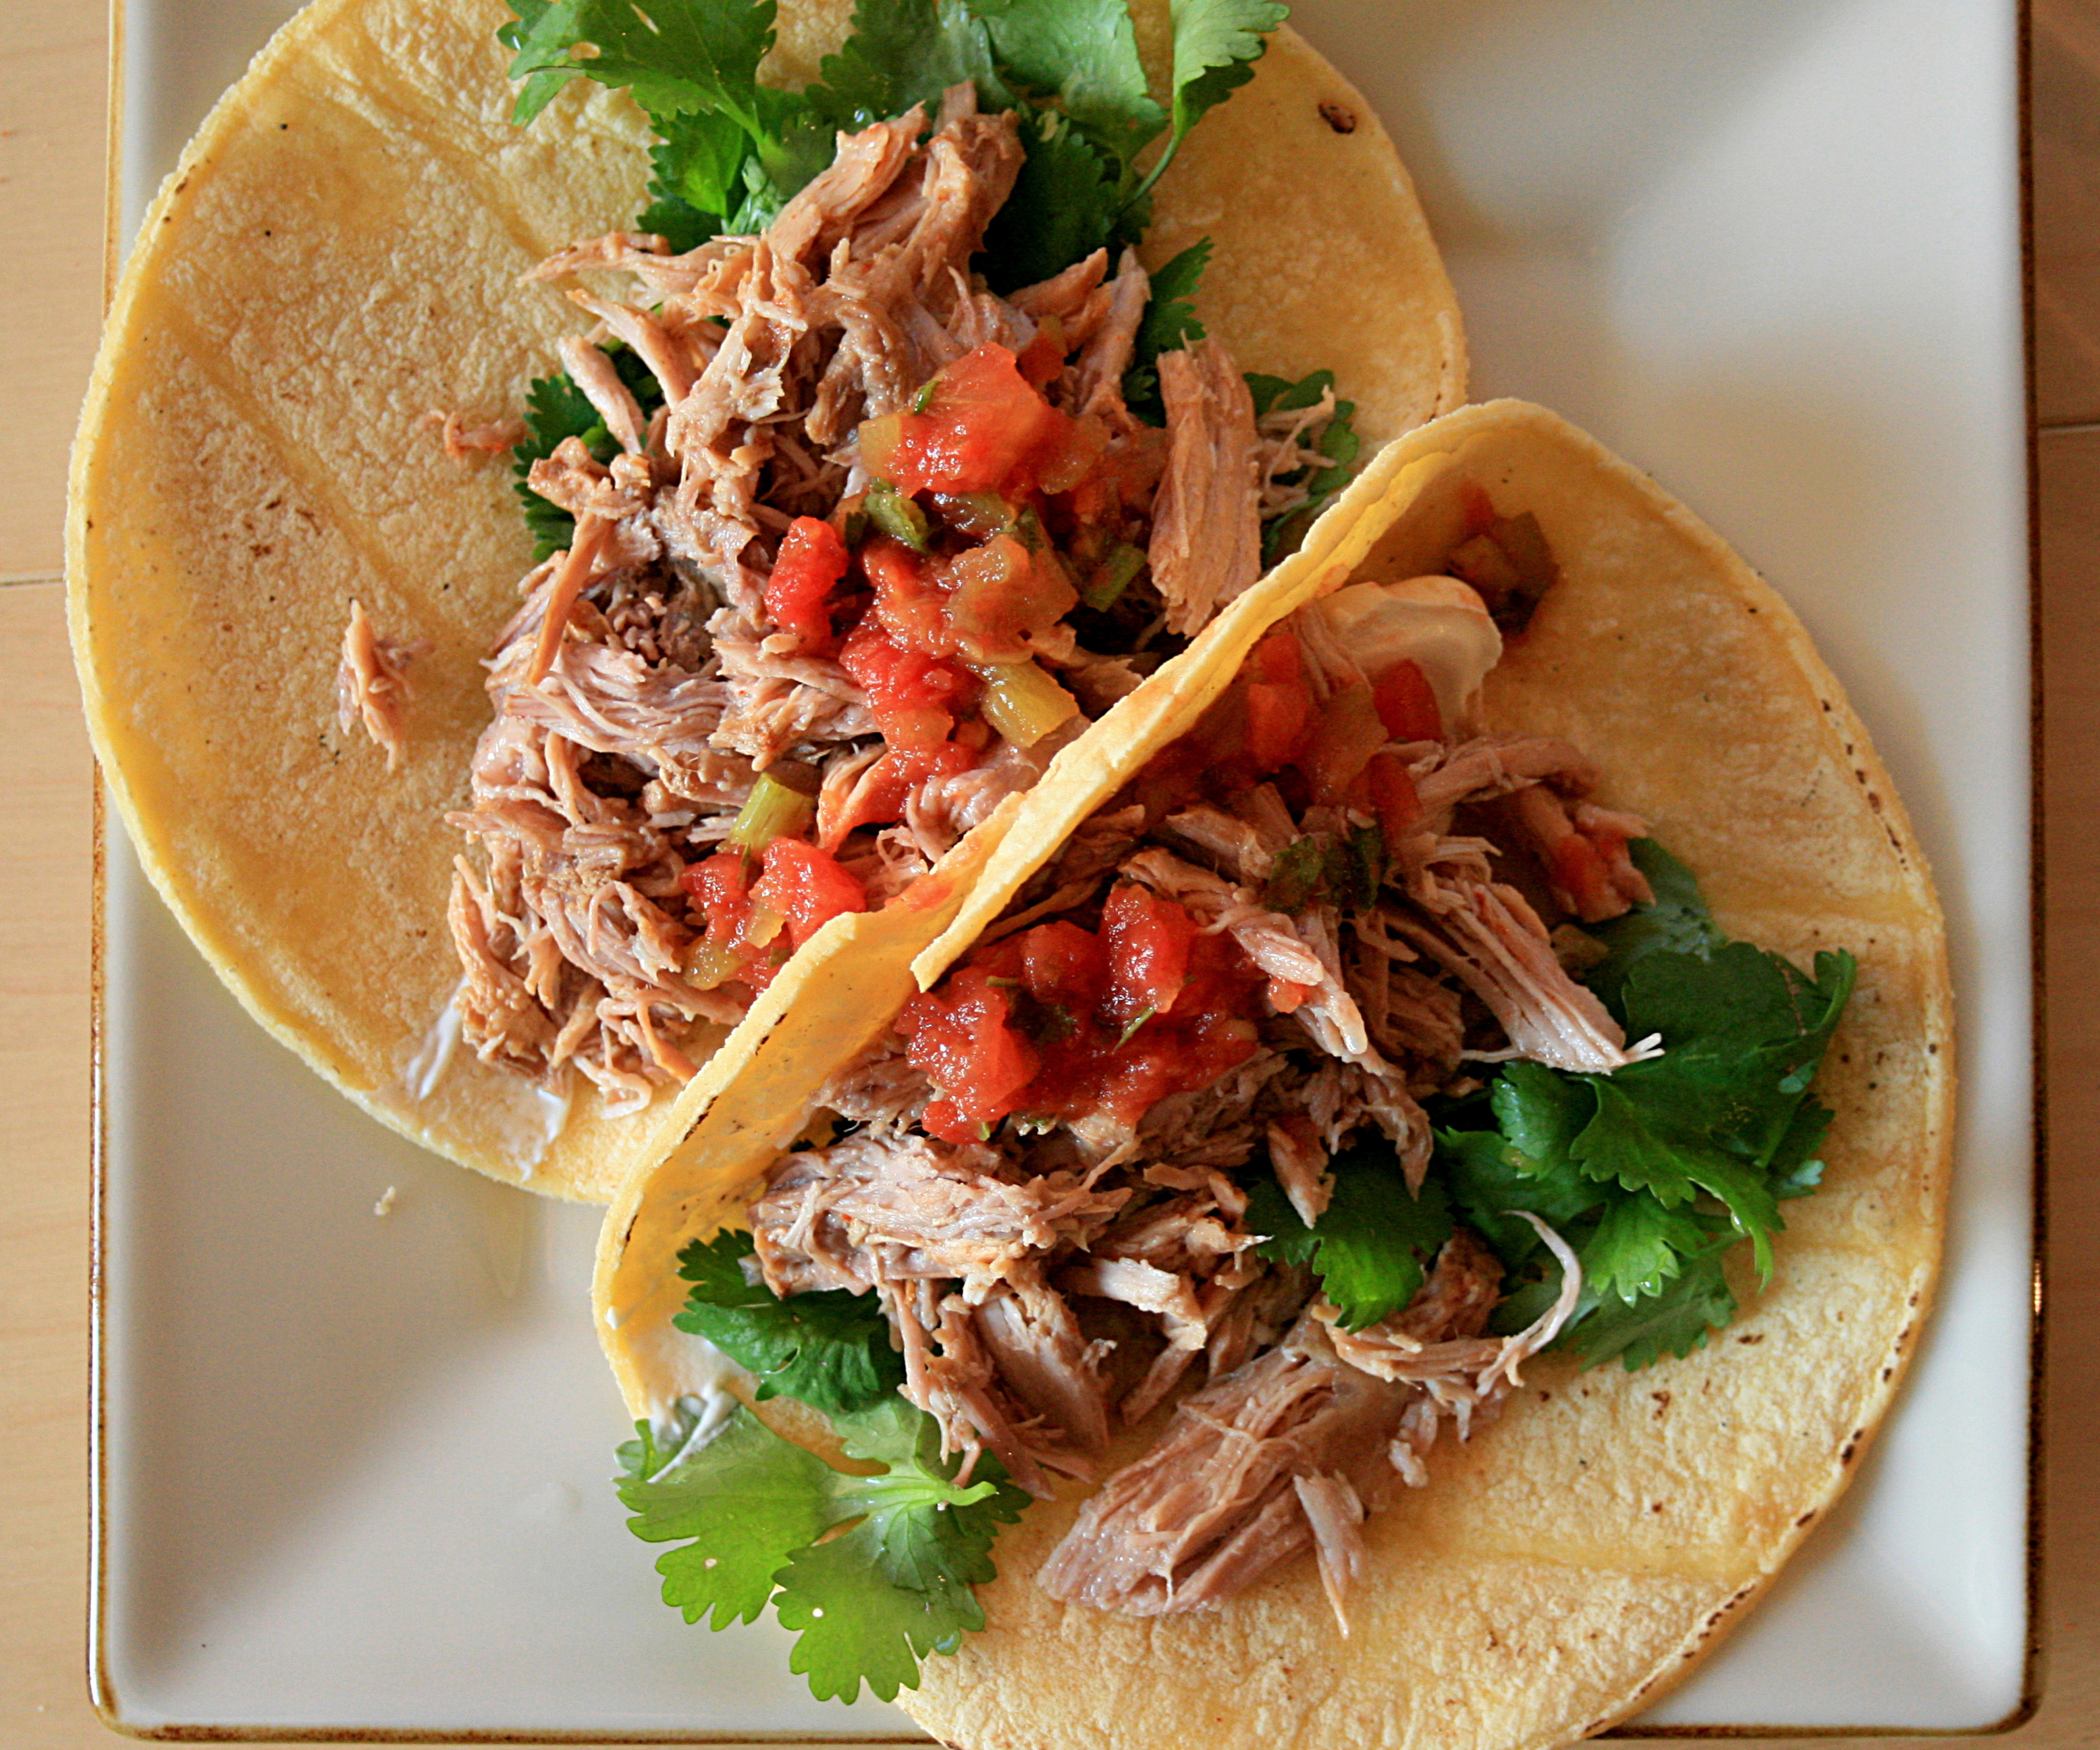 File:Carnitas.jpg - Wikipedia